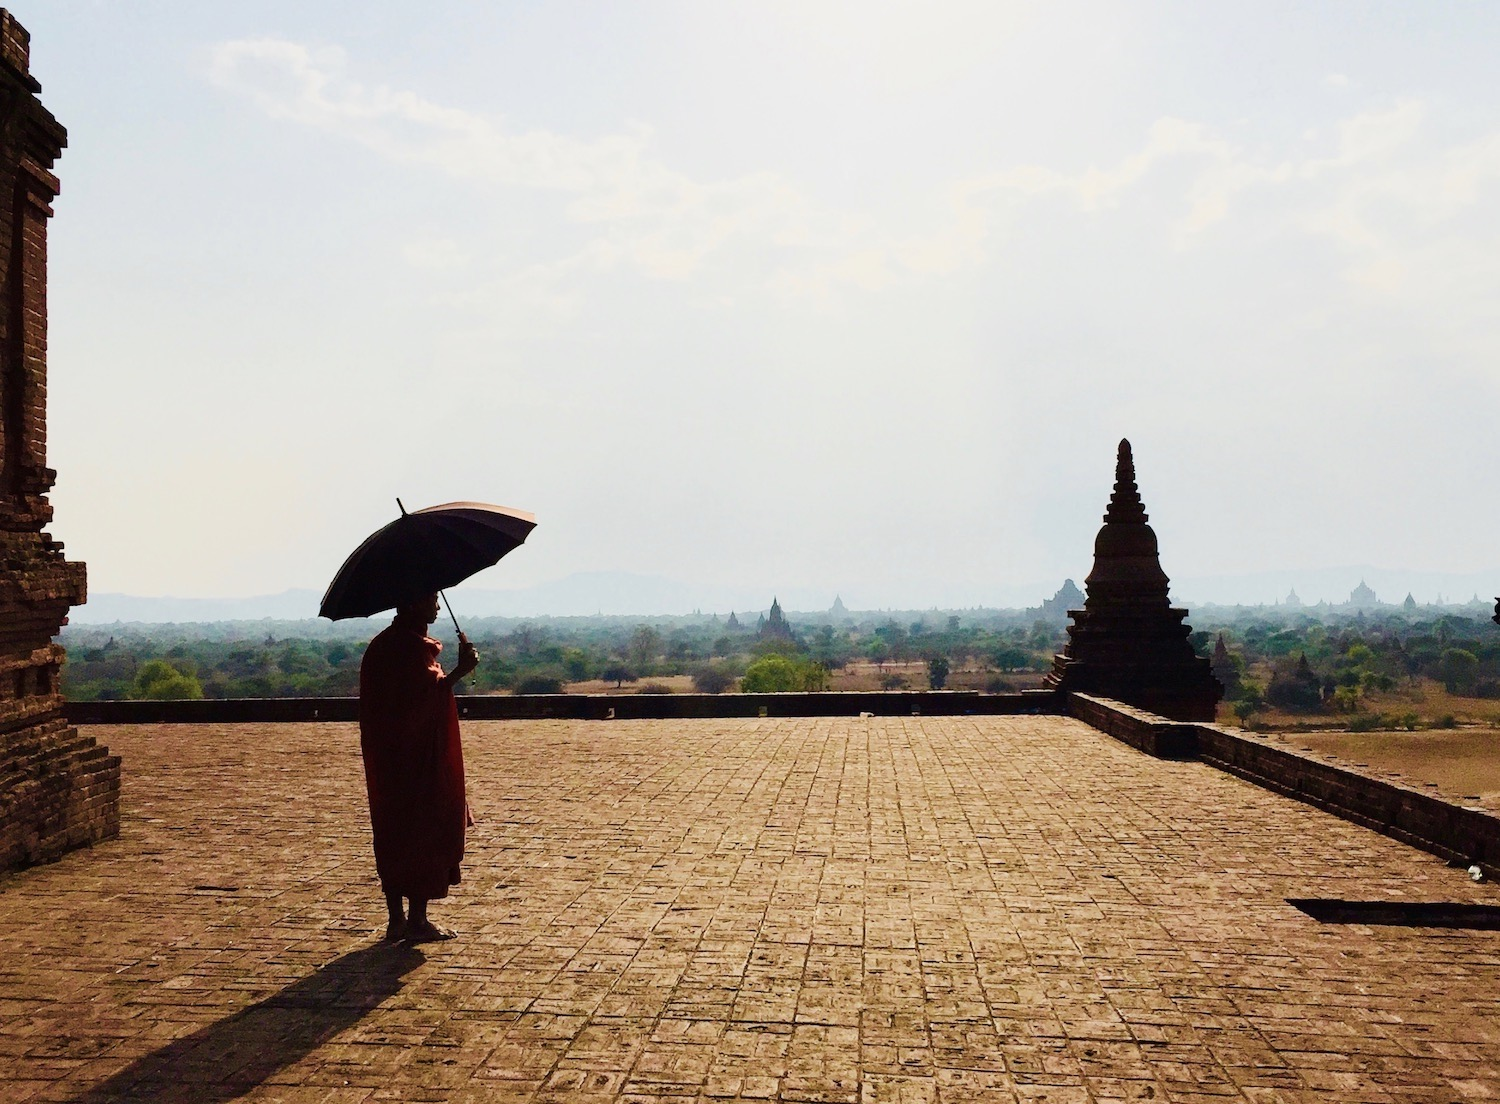 Monk in Bagan. How many days is he staying? Photo: Patti Neves